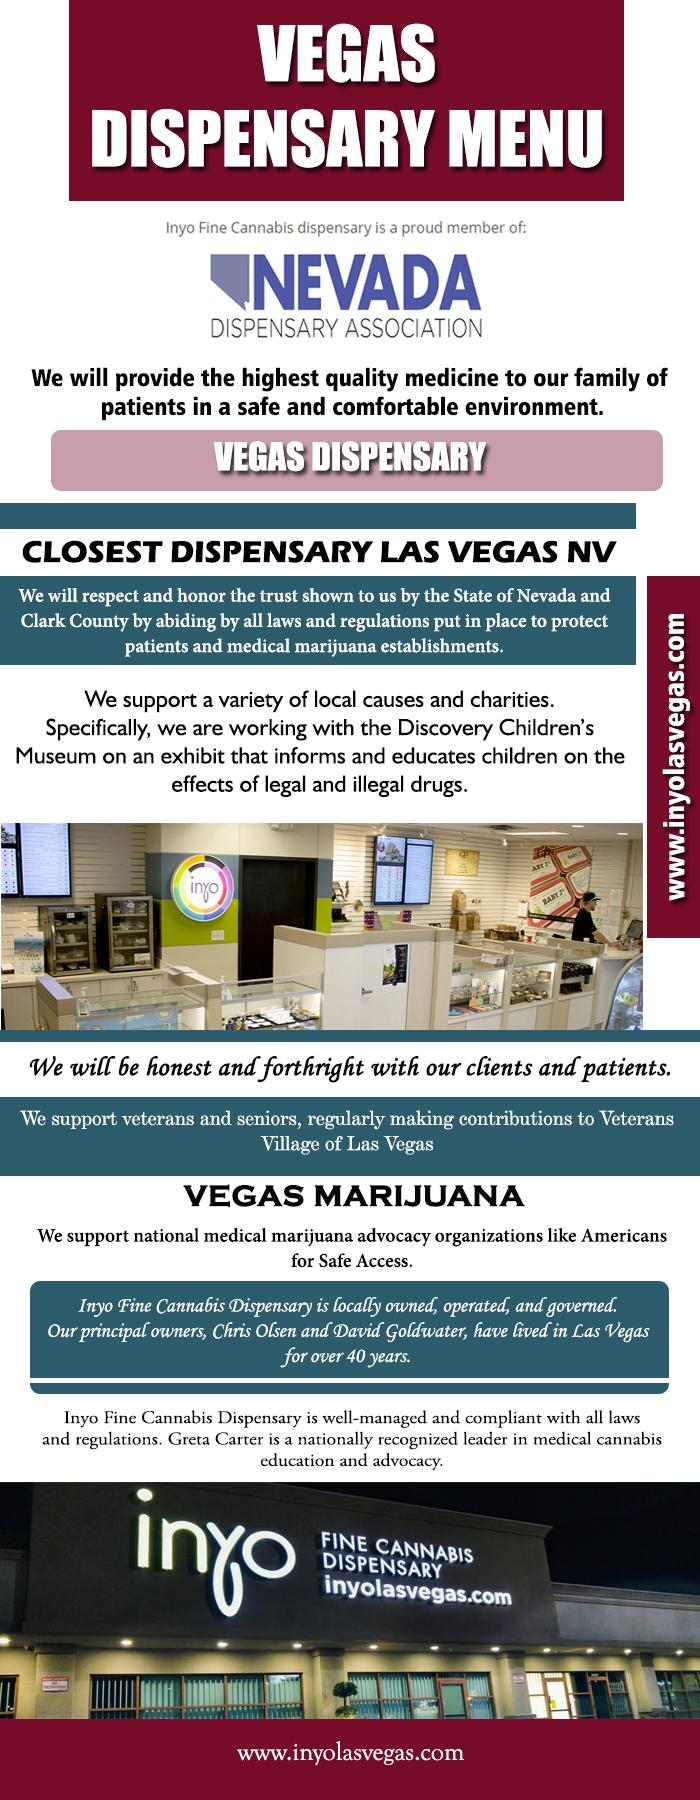 Las Vegas Dispensary